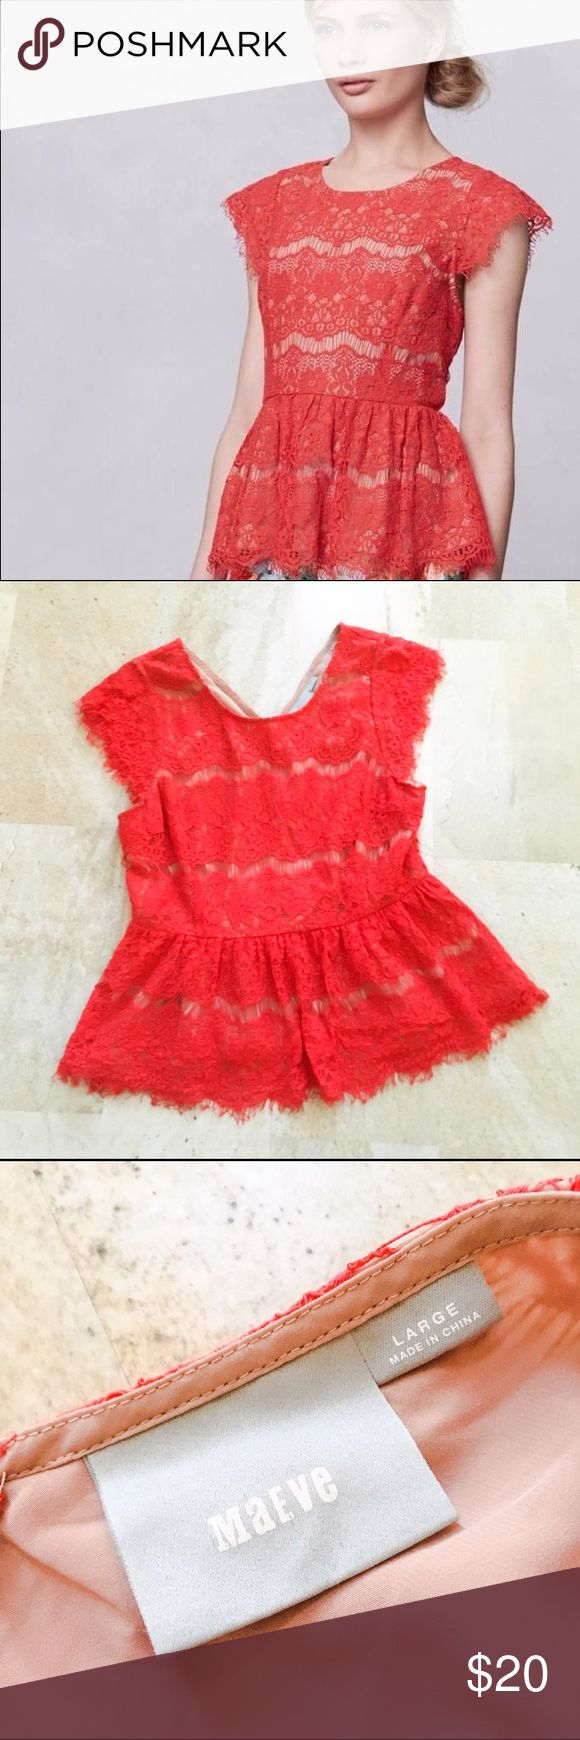 Anthropologie Mauve Red Lace Peplum Top This is a gently used Anthropologie Mauve Red Lace Peplum Top. In excellent condition. Anthropologie Tops Tees - Short Sleeve